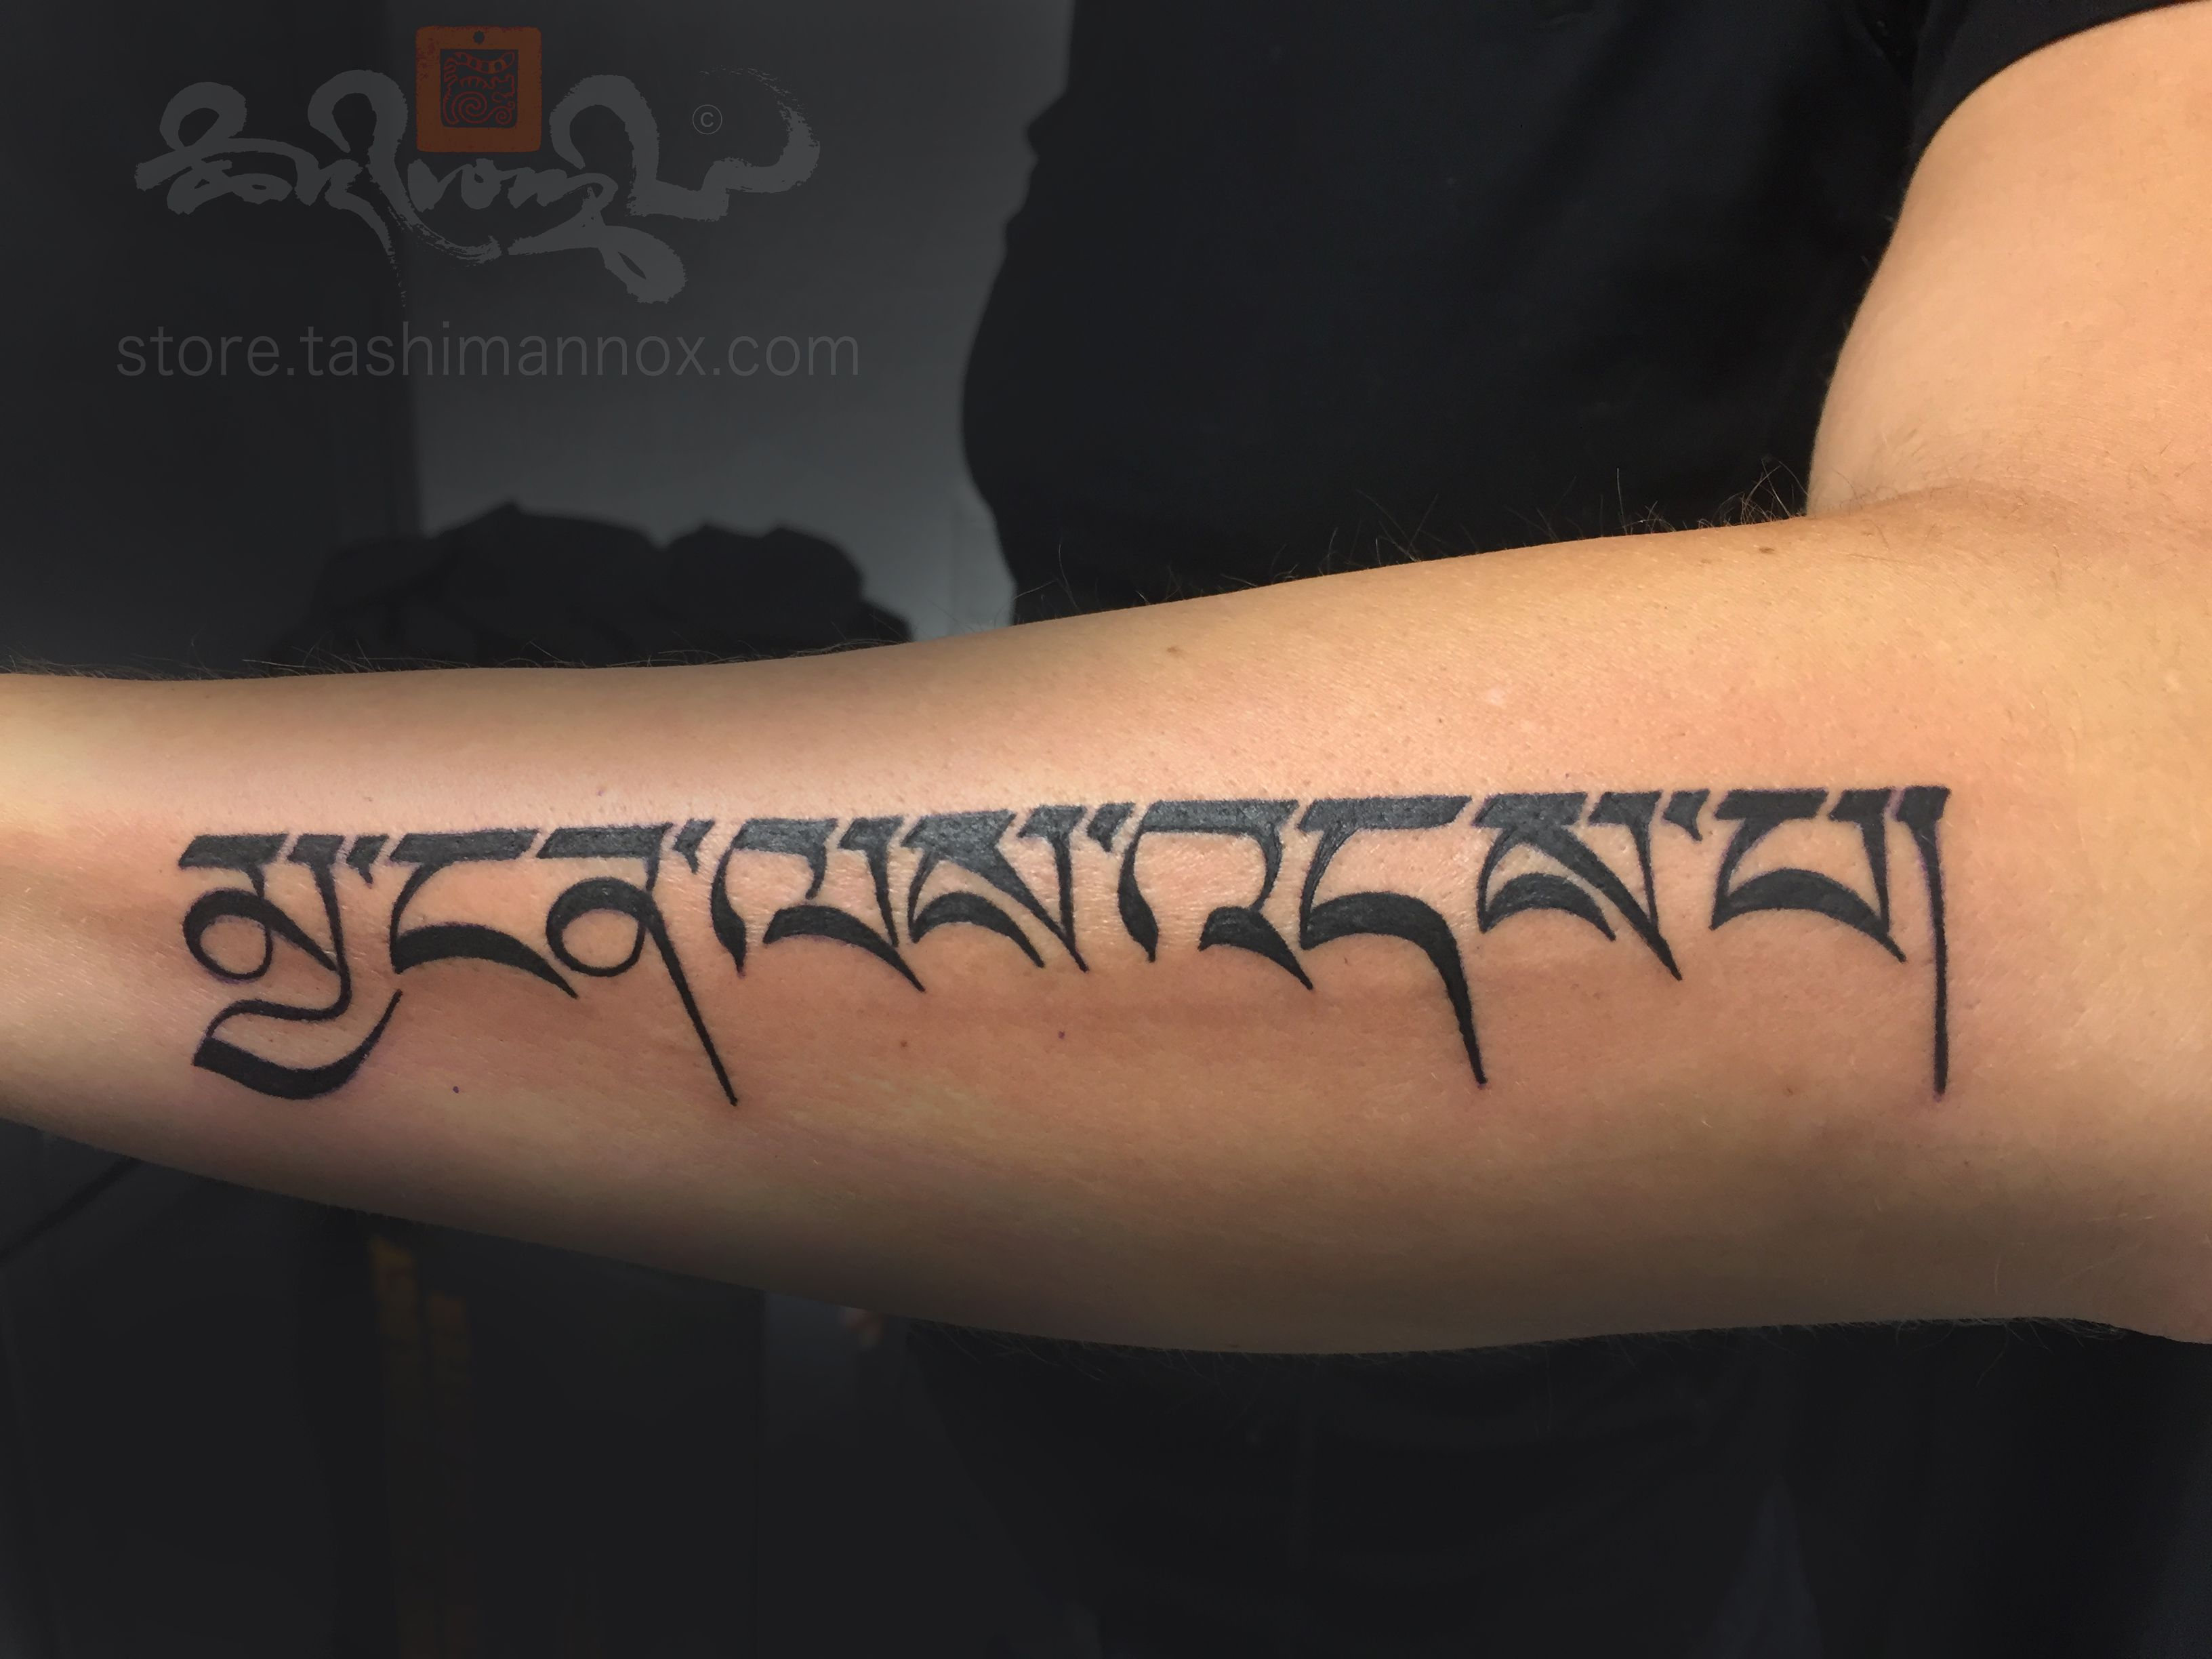 Calligraphy Tattoo Picture Nirvana Beyond Sorrow A Calligraphy Tattoo Design In The